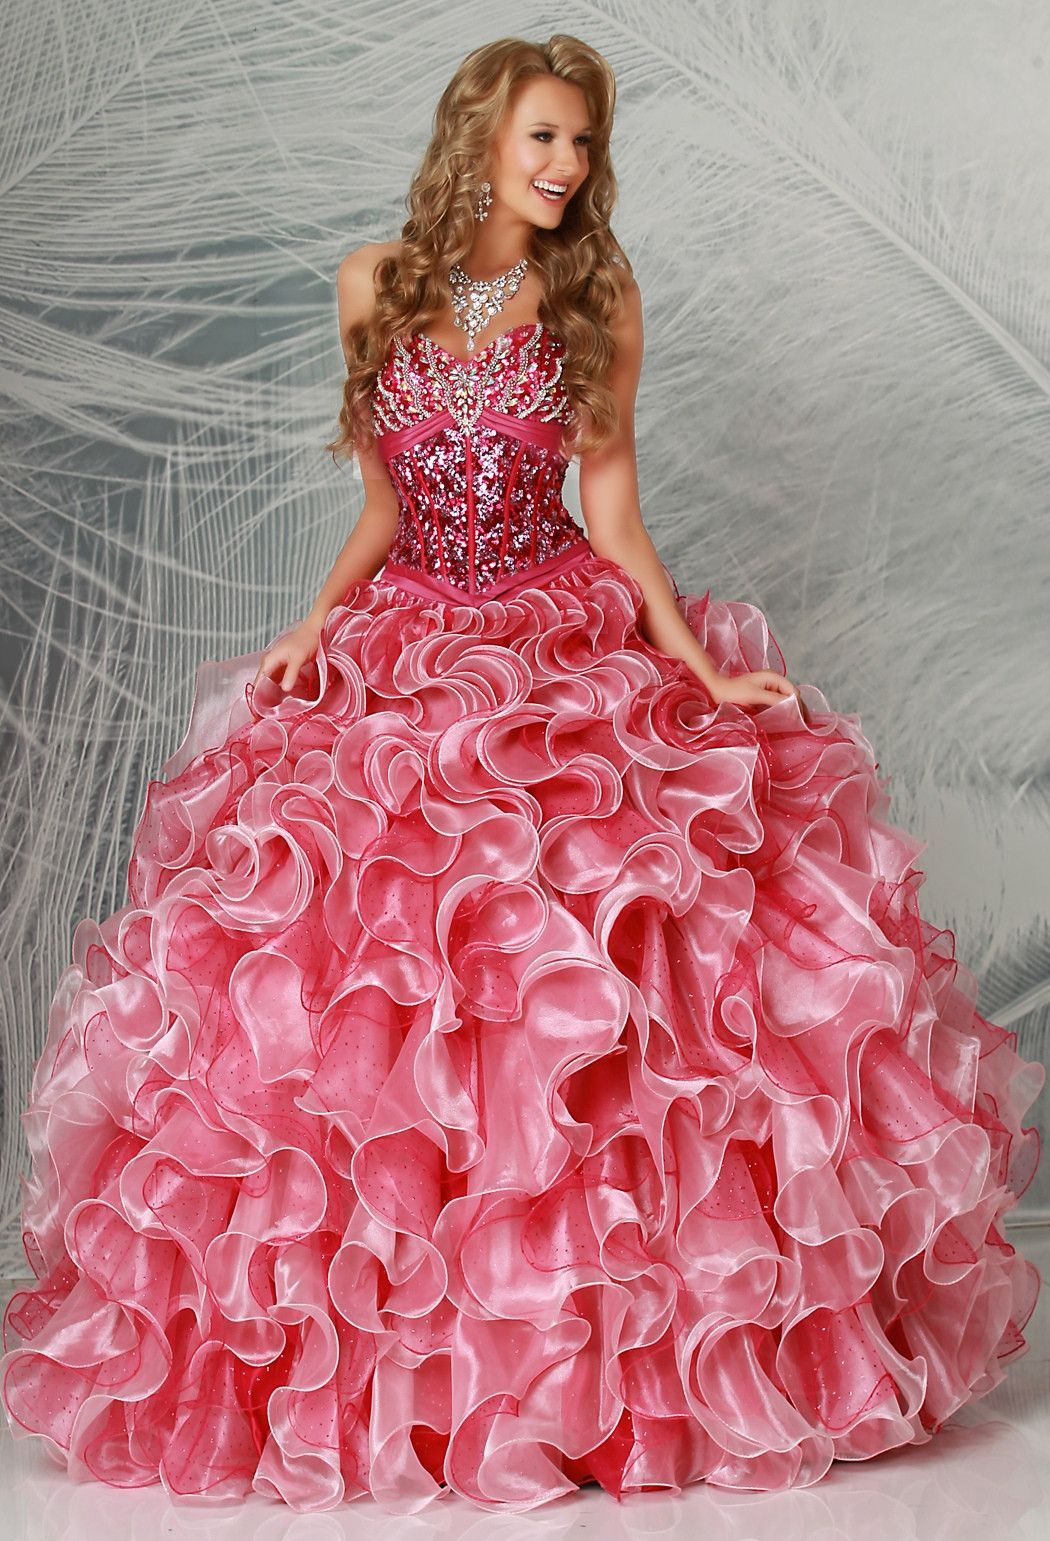 Q by DaVinci Quinceanera Dress Style 80183 | Gowns, Sweet 15 and ...